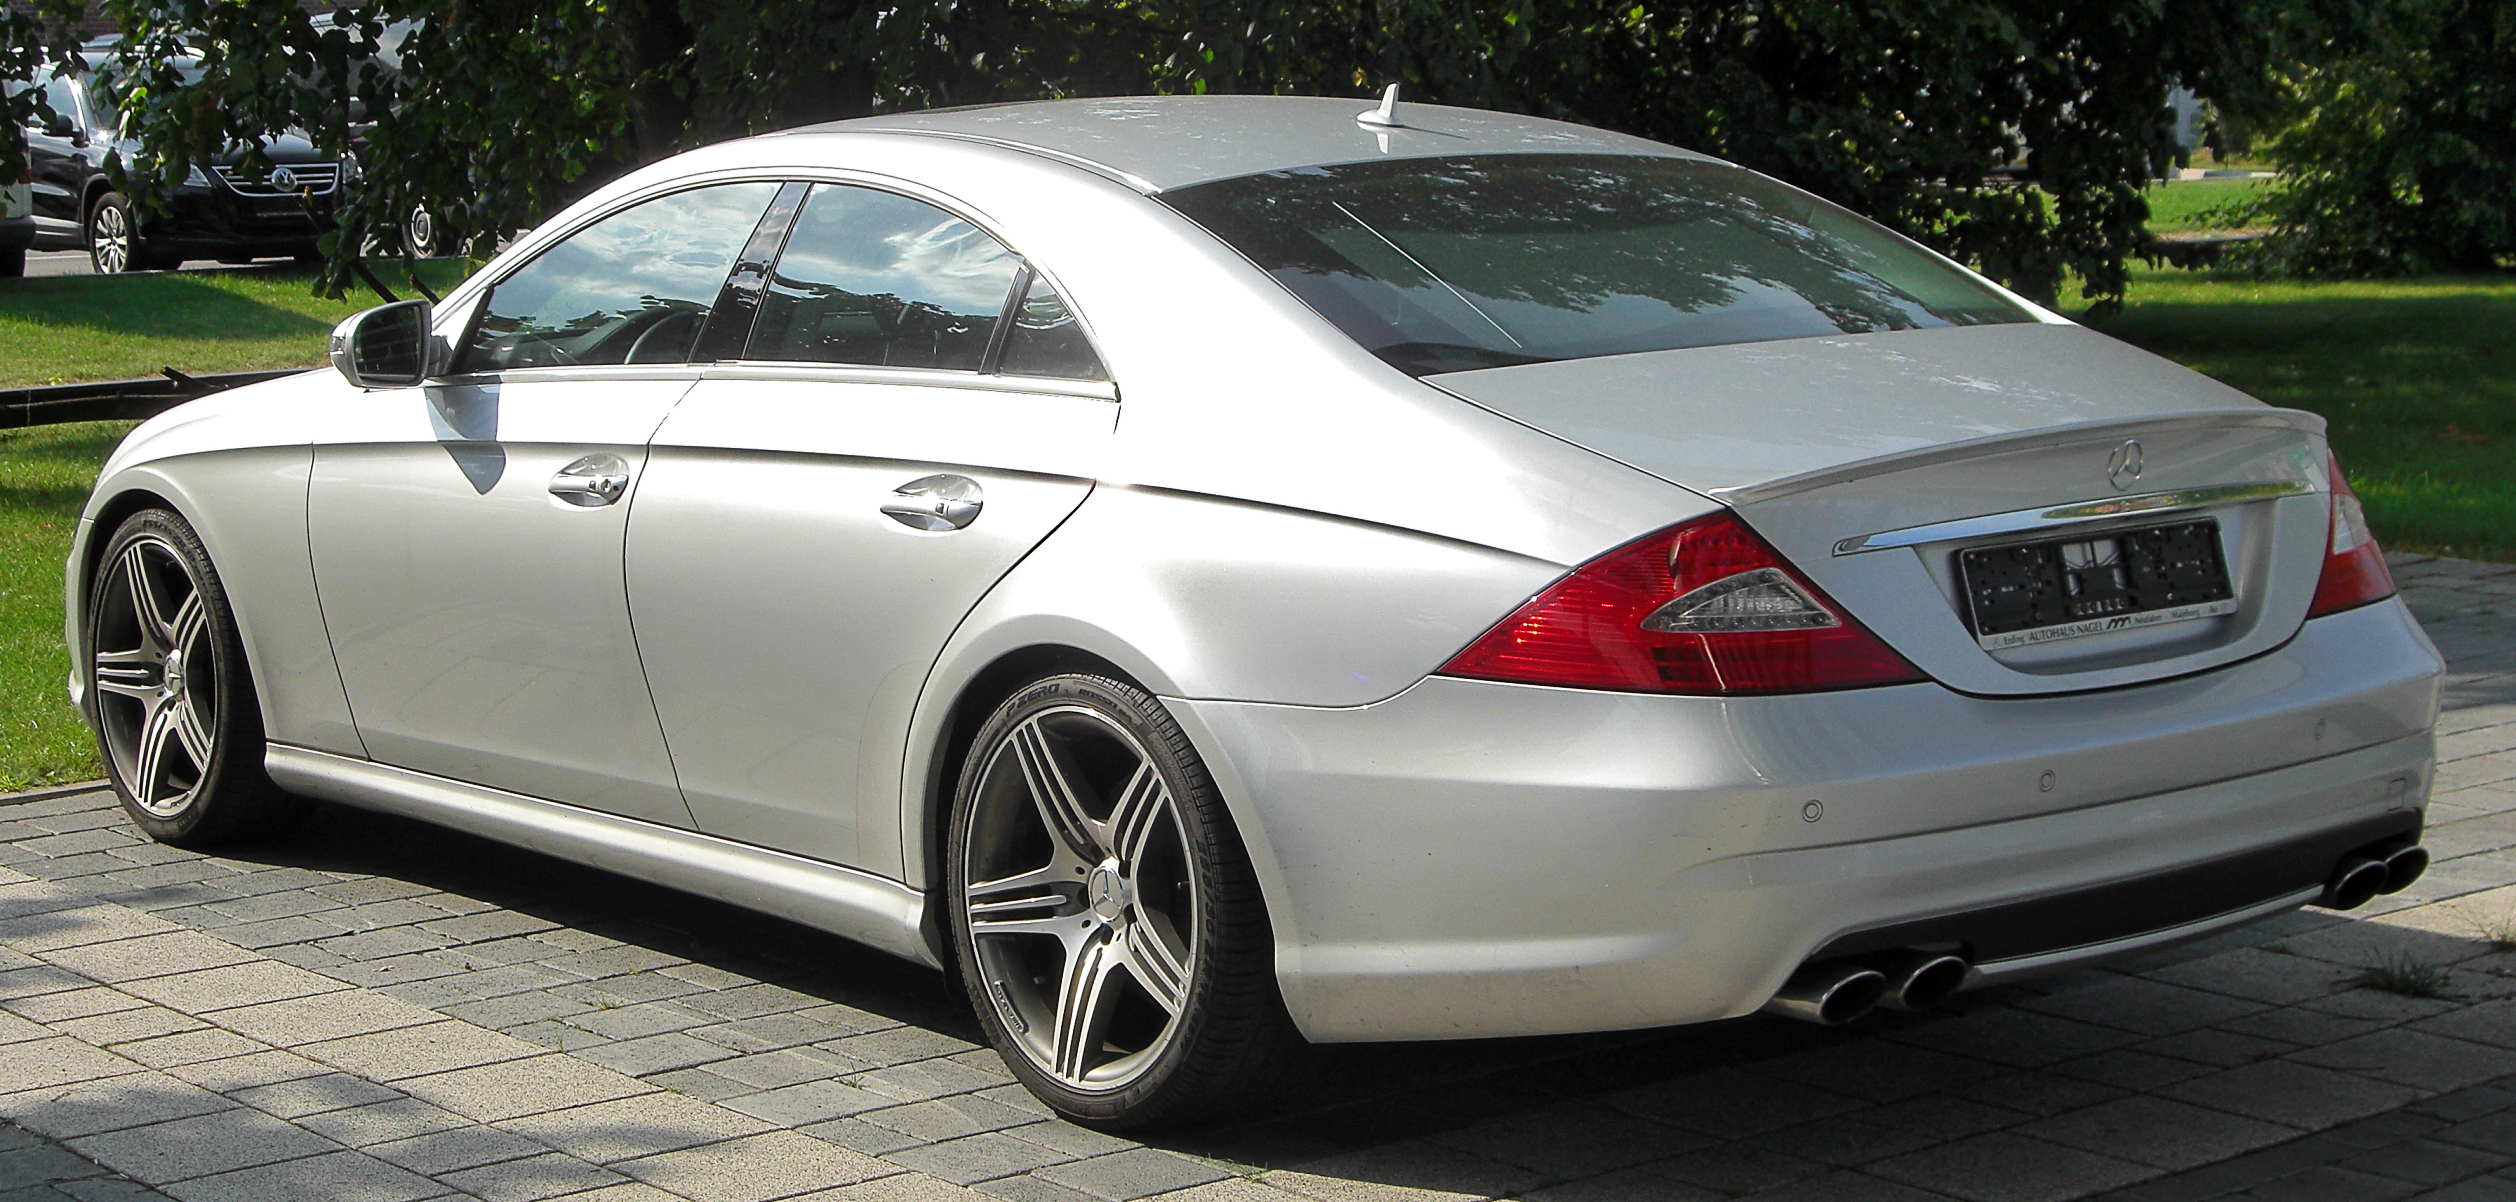 file mercedes cls 63 amg c219 facelift rear wikimedia commons. Black Bedroom Furniture Sets. Home Design Ideas